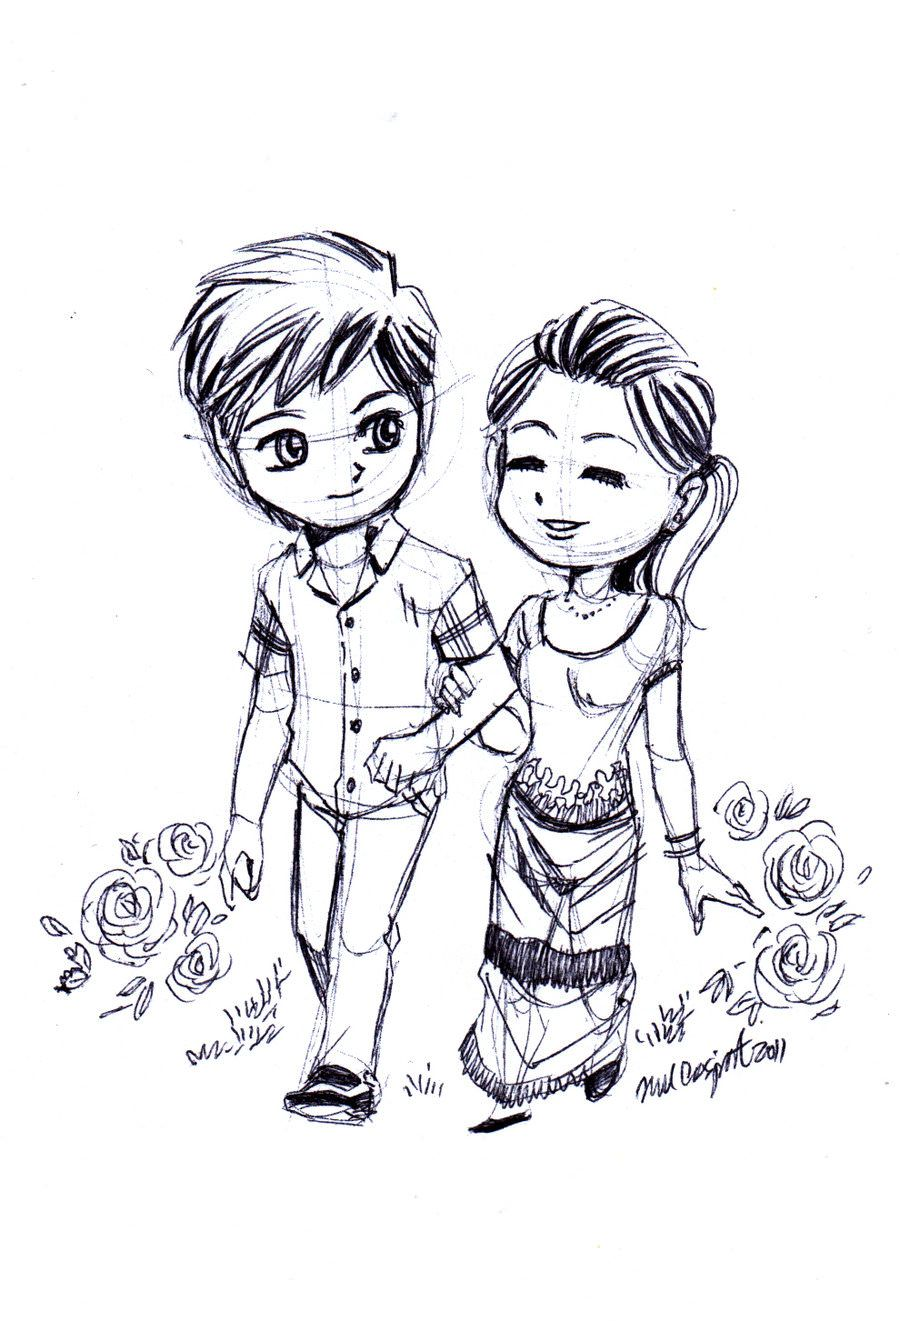 Trendy love drawings include 3d images and the love signs bubbling out the bubbling love signs will be expressed on your living room wall in such a style